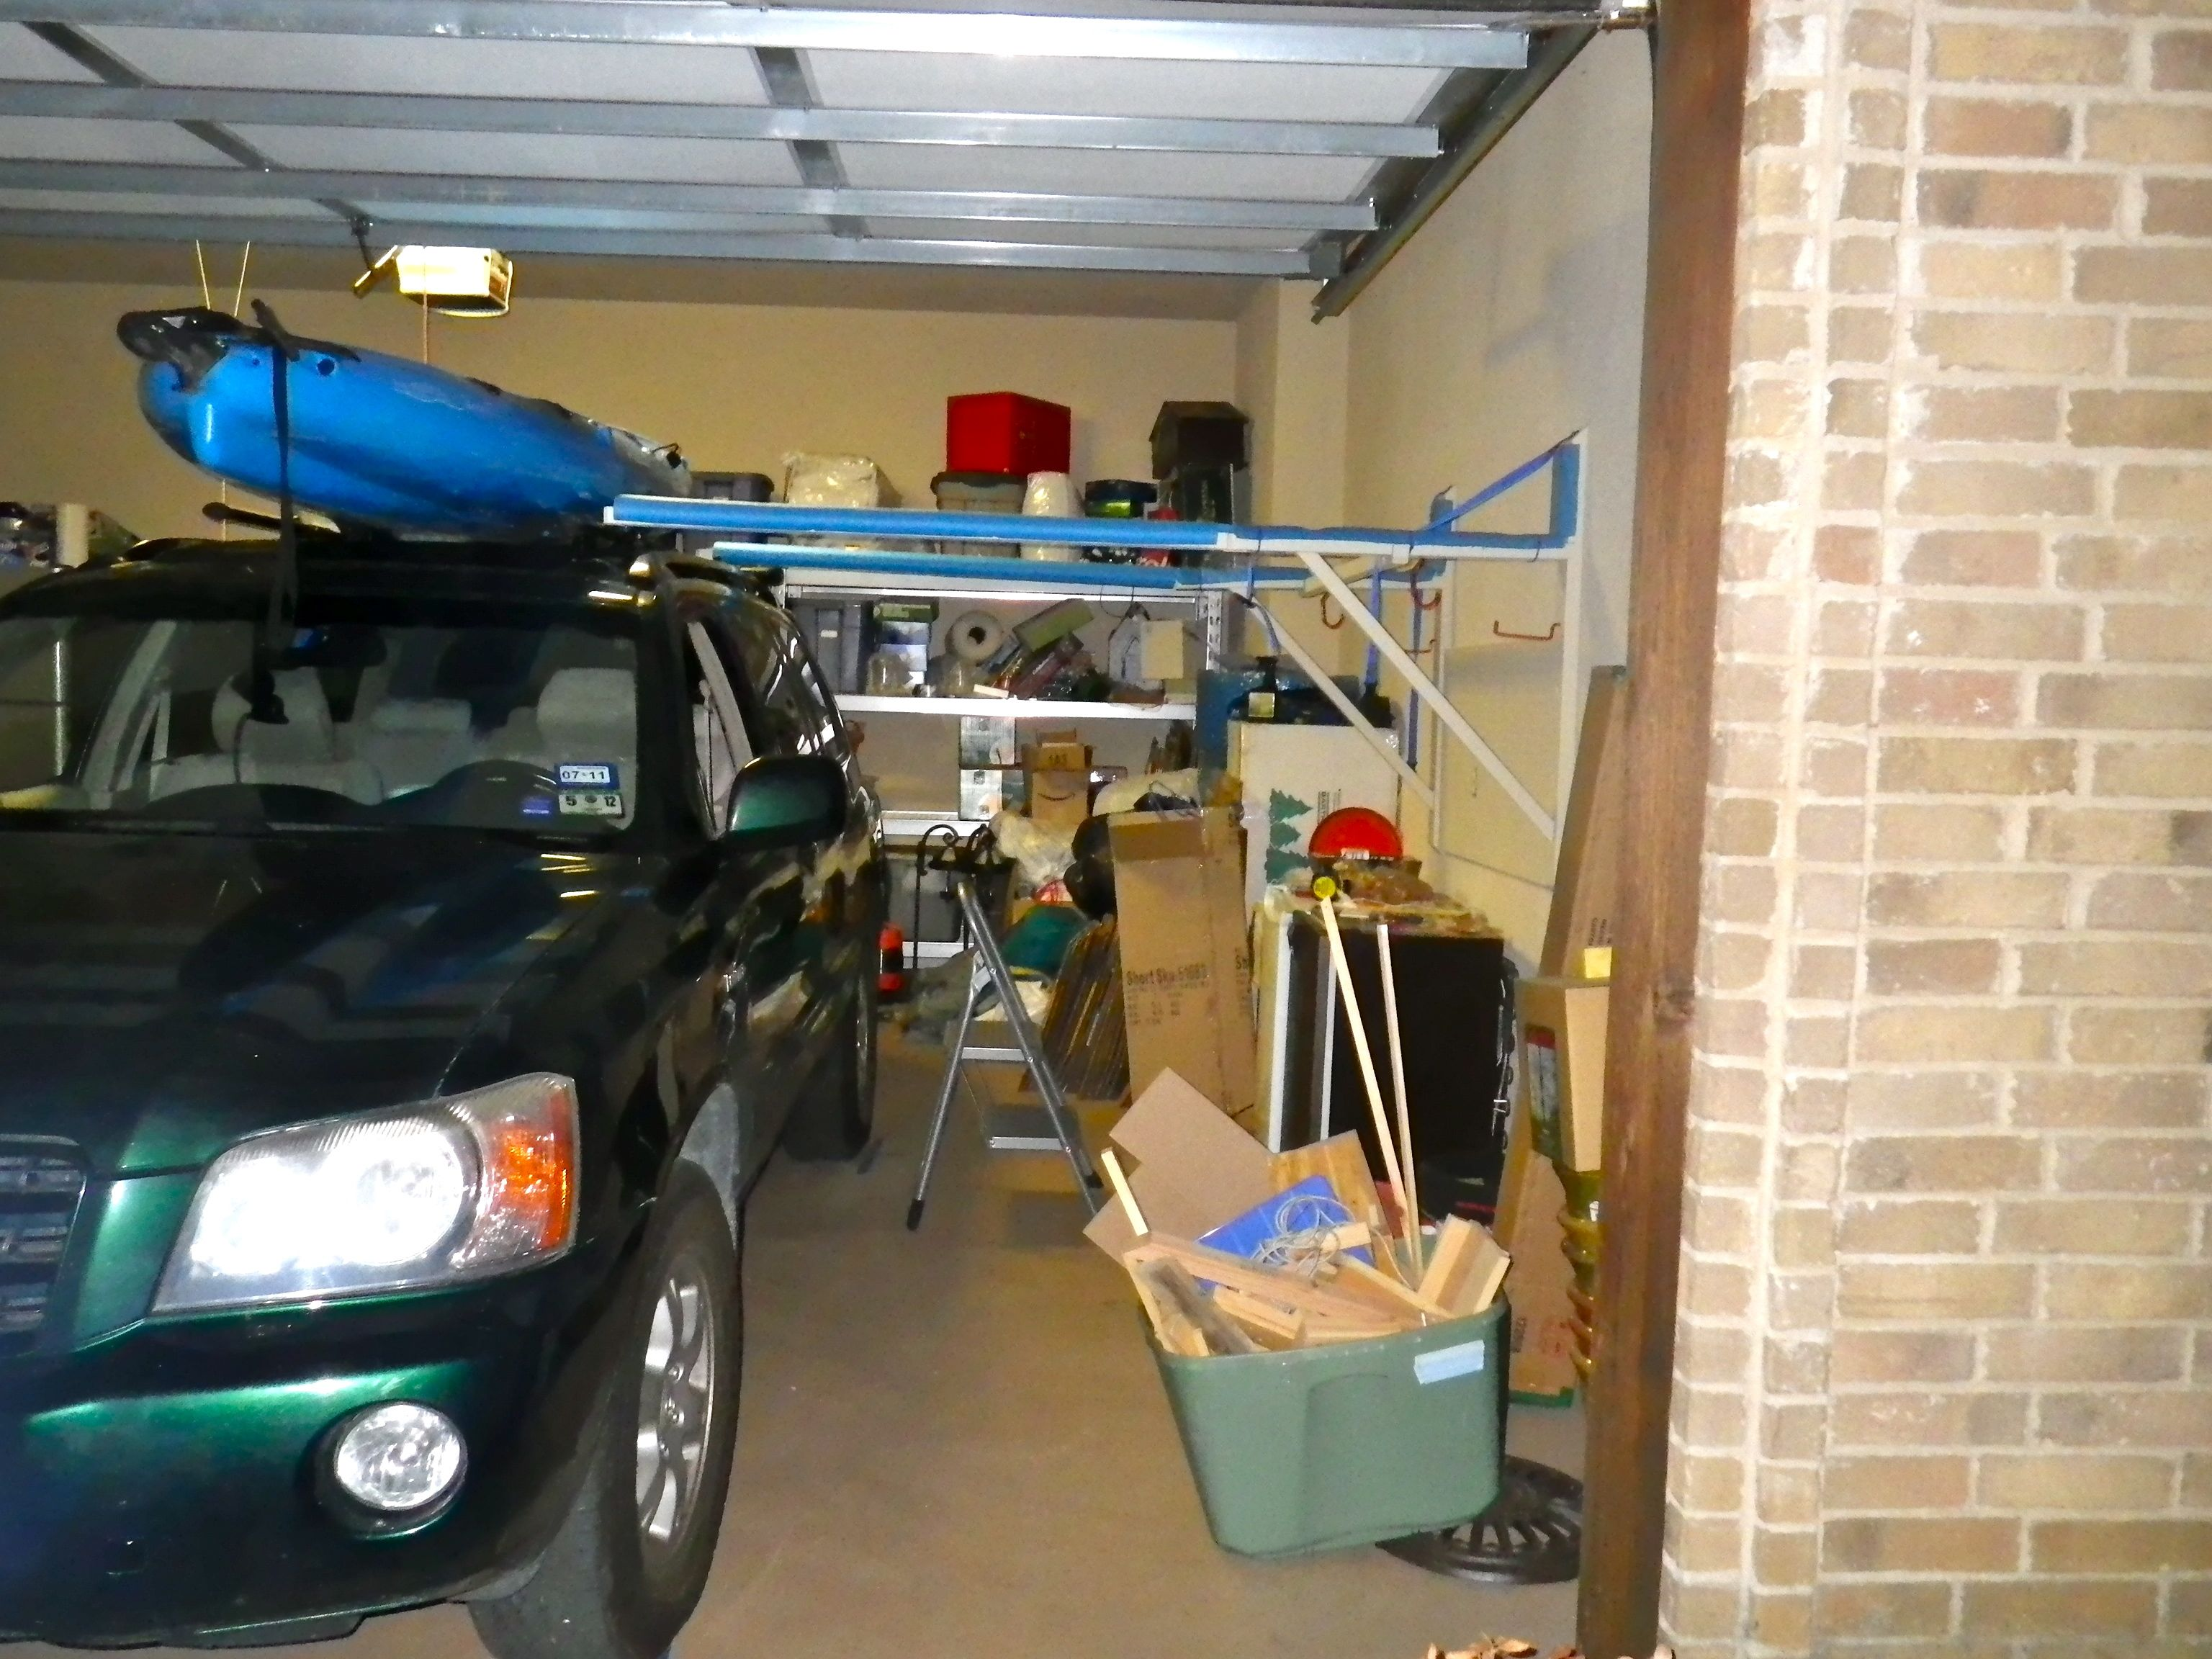 Hobie Forums • View topic - Storage help -- Hobie Outback just below on hot tub in garage, shop in garage, helicopter in garage, atv in garage, surfing in garage, boxing in garage, walk in garage, love in garage, limo in garage, car in garage, parking in garage, archery in garage, plane in garage, kayak lifts for garage, wrestling in garage, run in garage, kayak holder garage, pulley system for garage, shooting in garage, boat in garage,